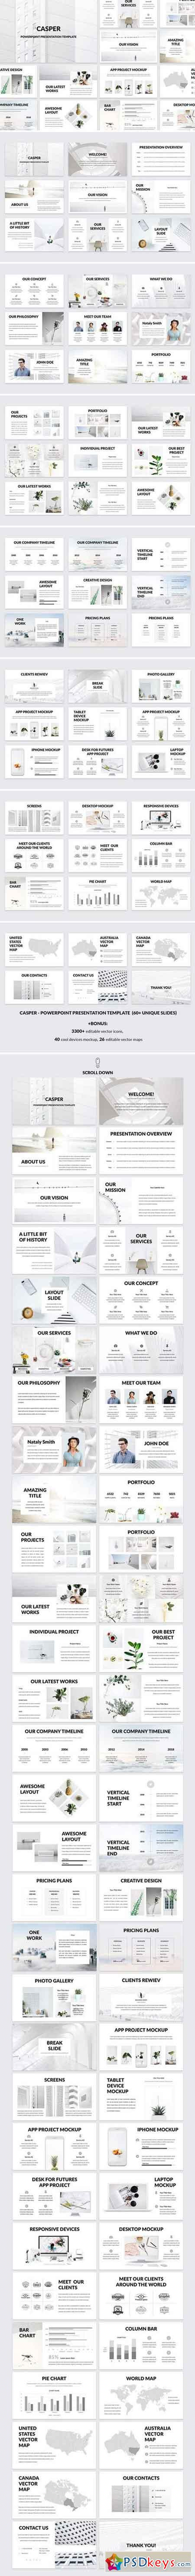 Casper - Powerpoint Template 2379262